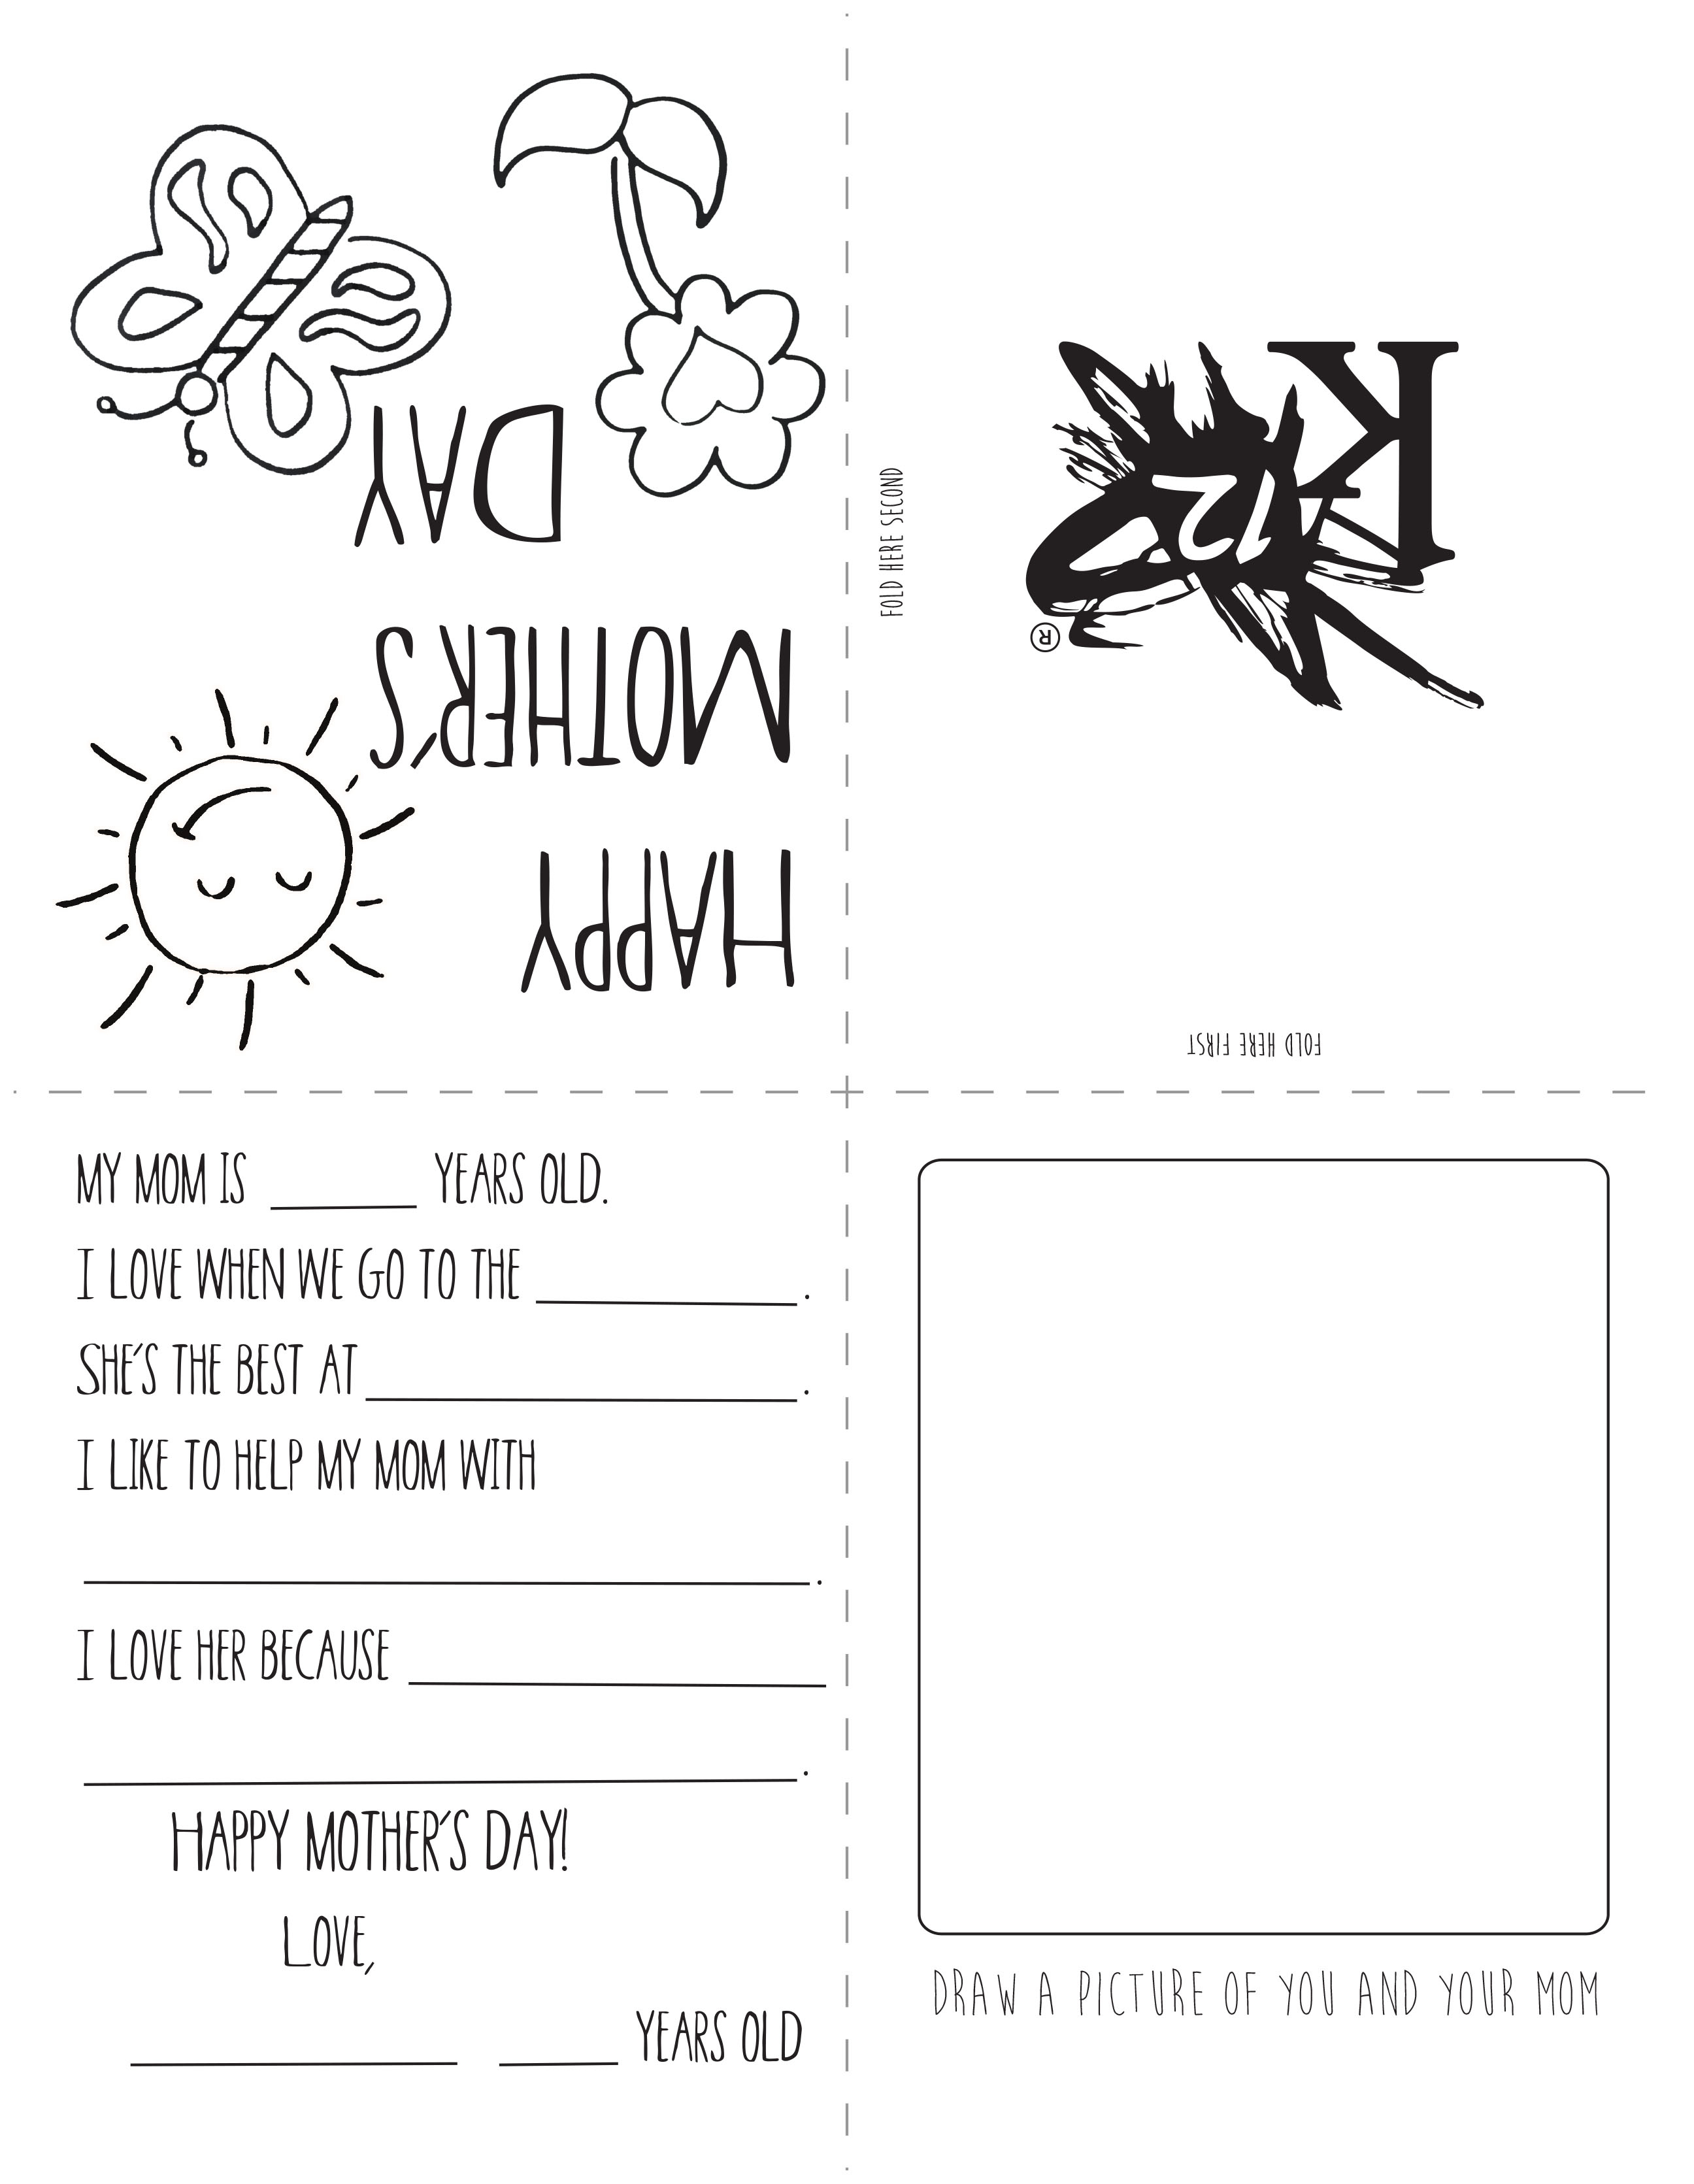 Printable Mother's Day Card - Learning Liftoff - Free Printable Mothers Day Cards No Download